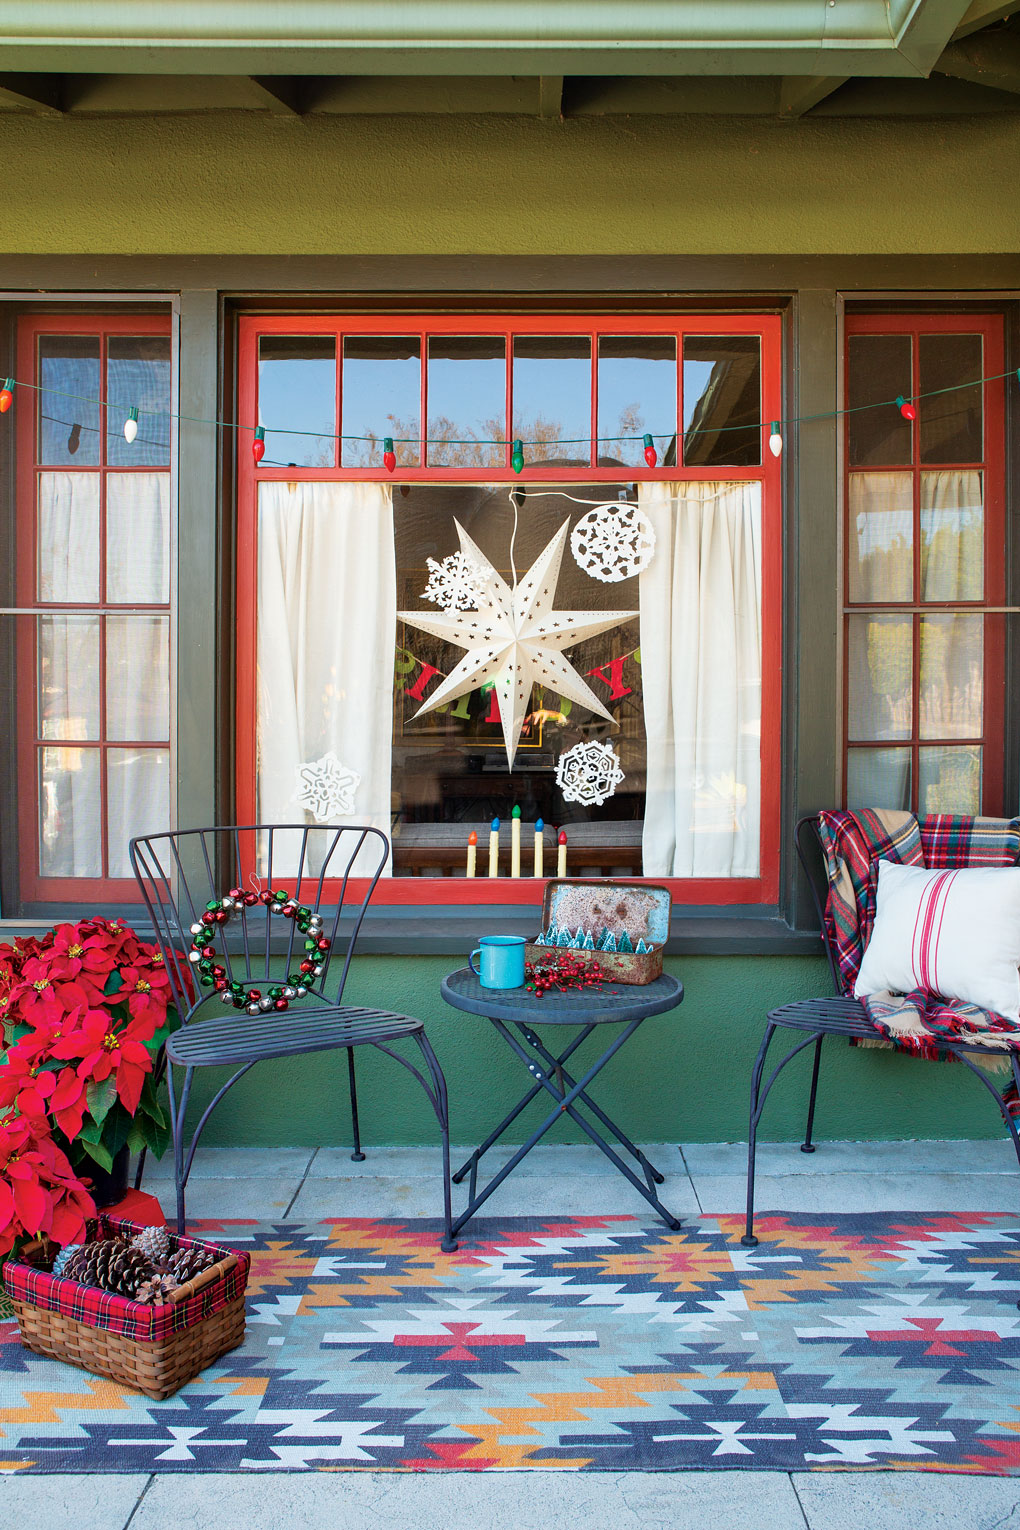 Metal black bistro set sitting on the front porch atop a Navajo inspired rug flanked by poinsettias.